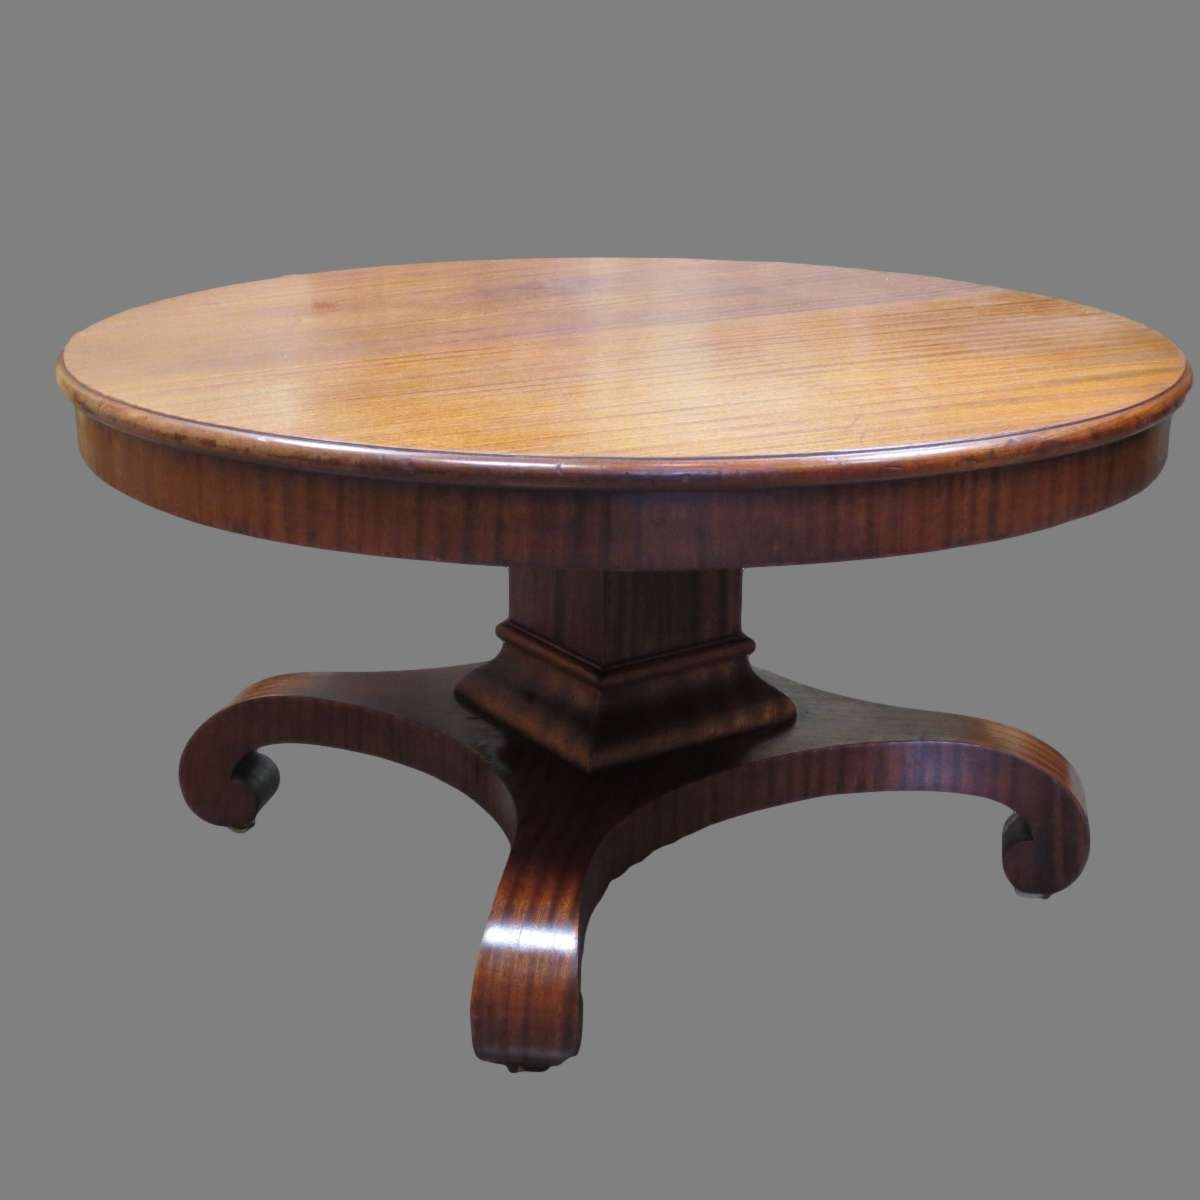 Most Popular Solid Round Coffee Tables With Regard To Coffee Tables Ideas: Surprising Vintage Round Coffee Table (View 7 of 20)